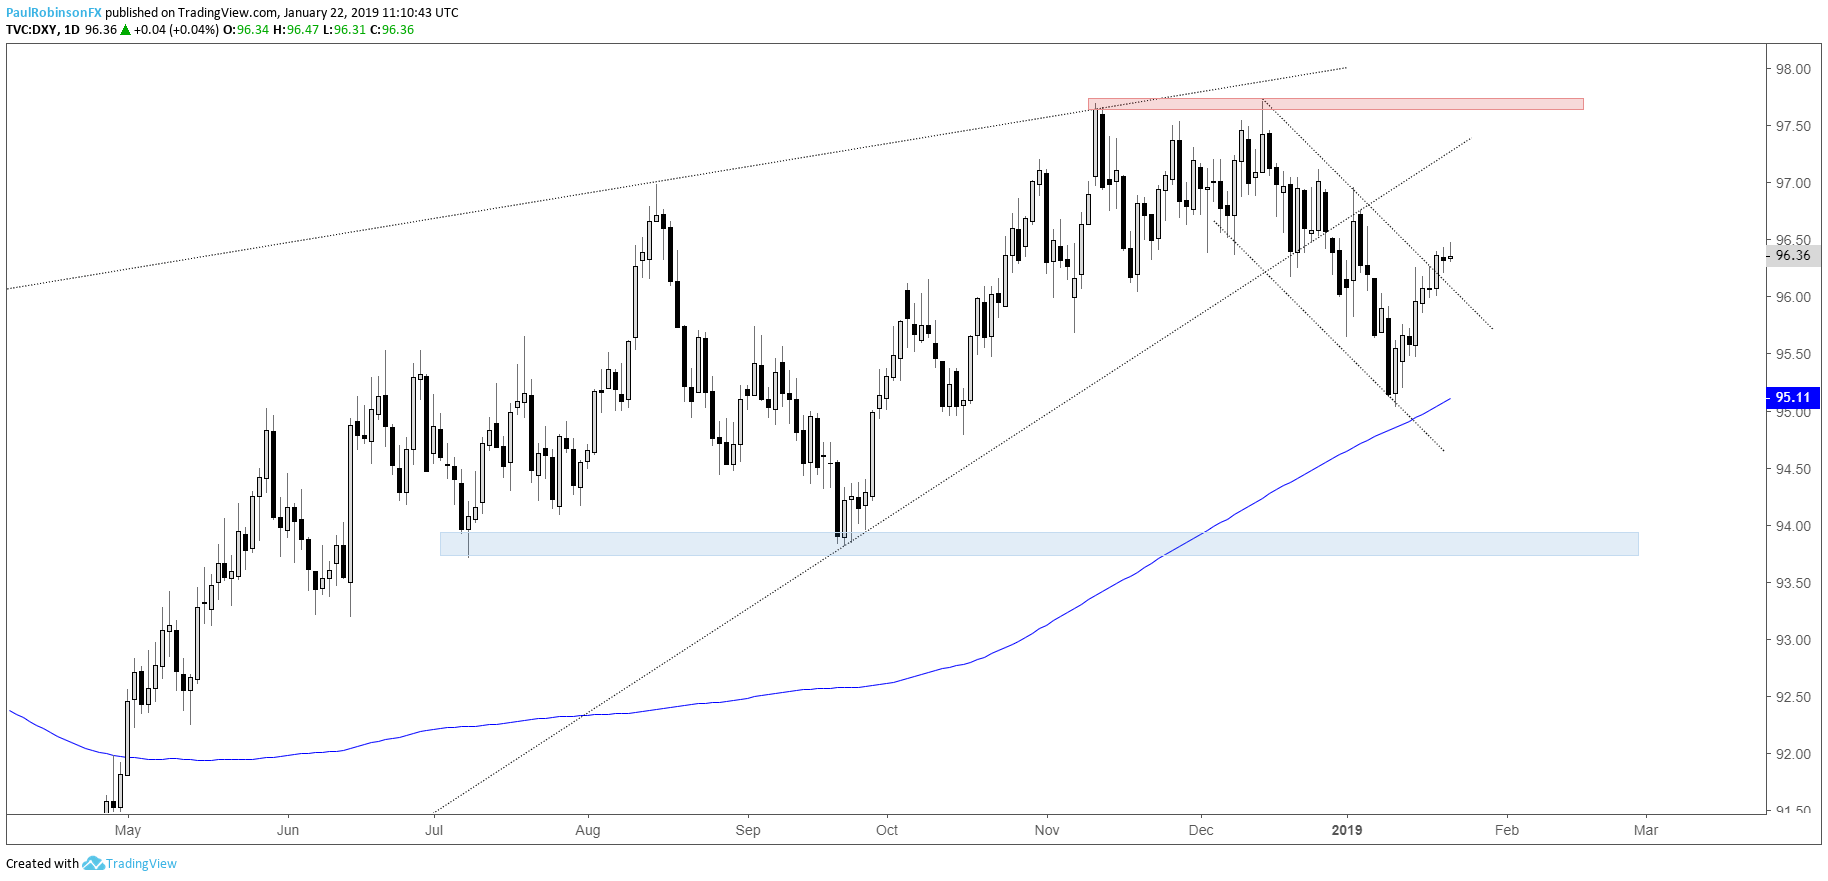 US Dollar Index DXY Daily Chart May Pull Back But Be Short Lived